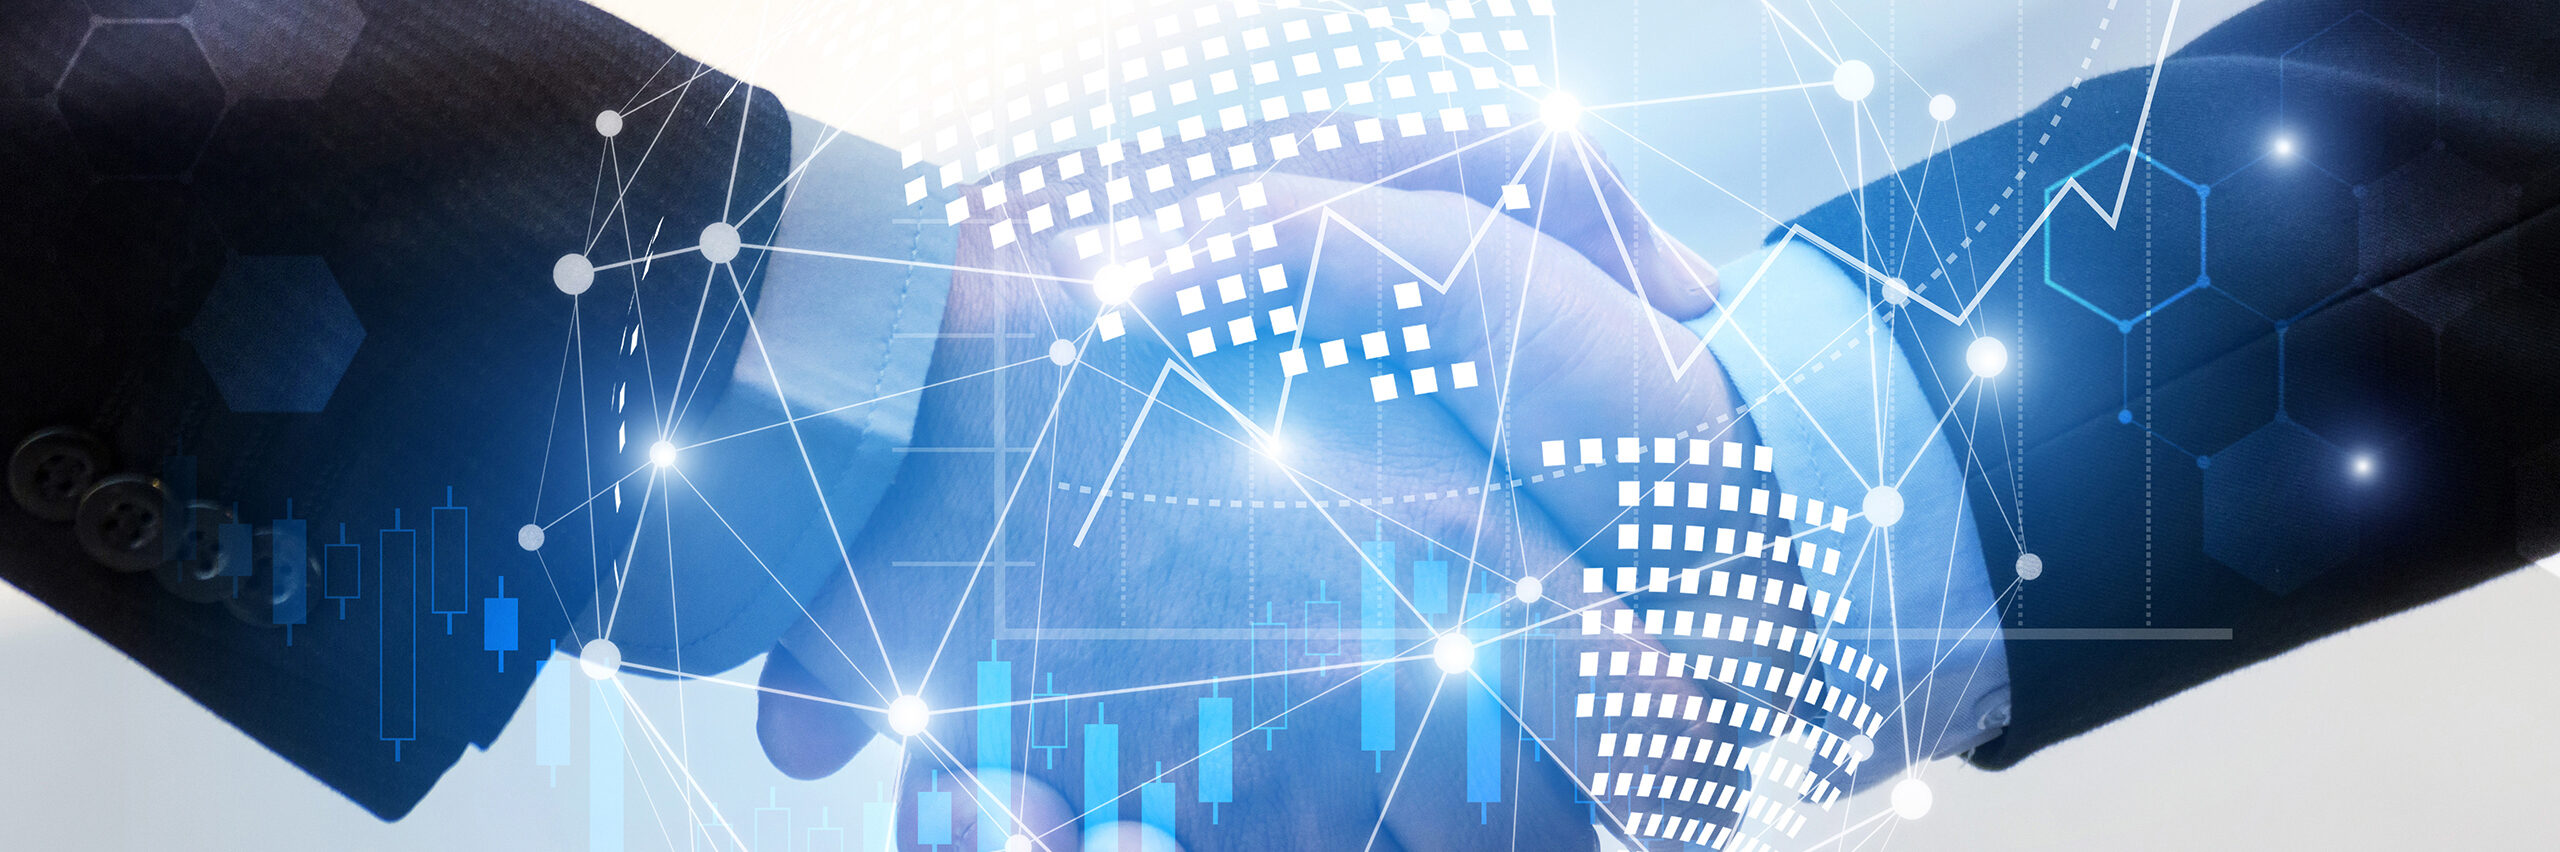 Business man handshake with effect global world map network link connection and graph chart of stock market graphic diagram, digital technology, internet communication, teamwork, partnership concept. [Shutterstock image]